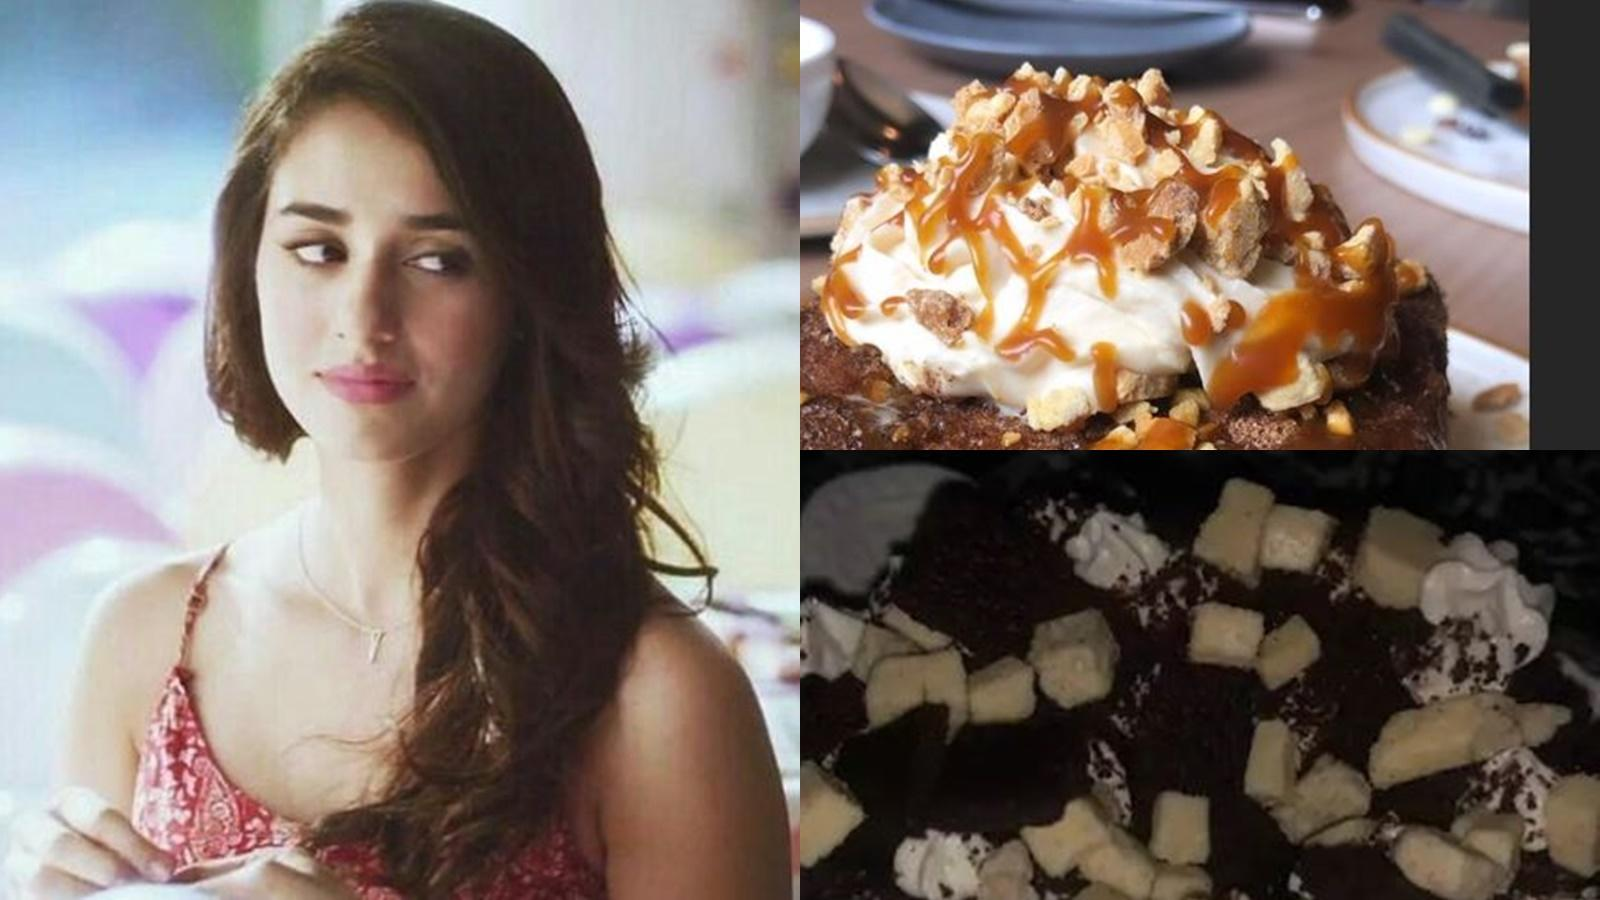 disha-patani-enjoys-cheat-day-by-eating-this-mouth-watering-dessert